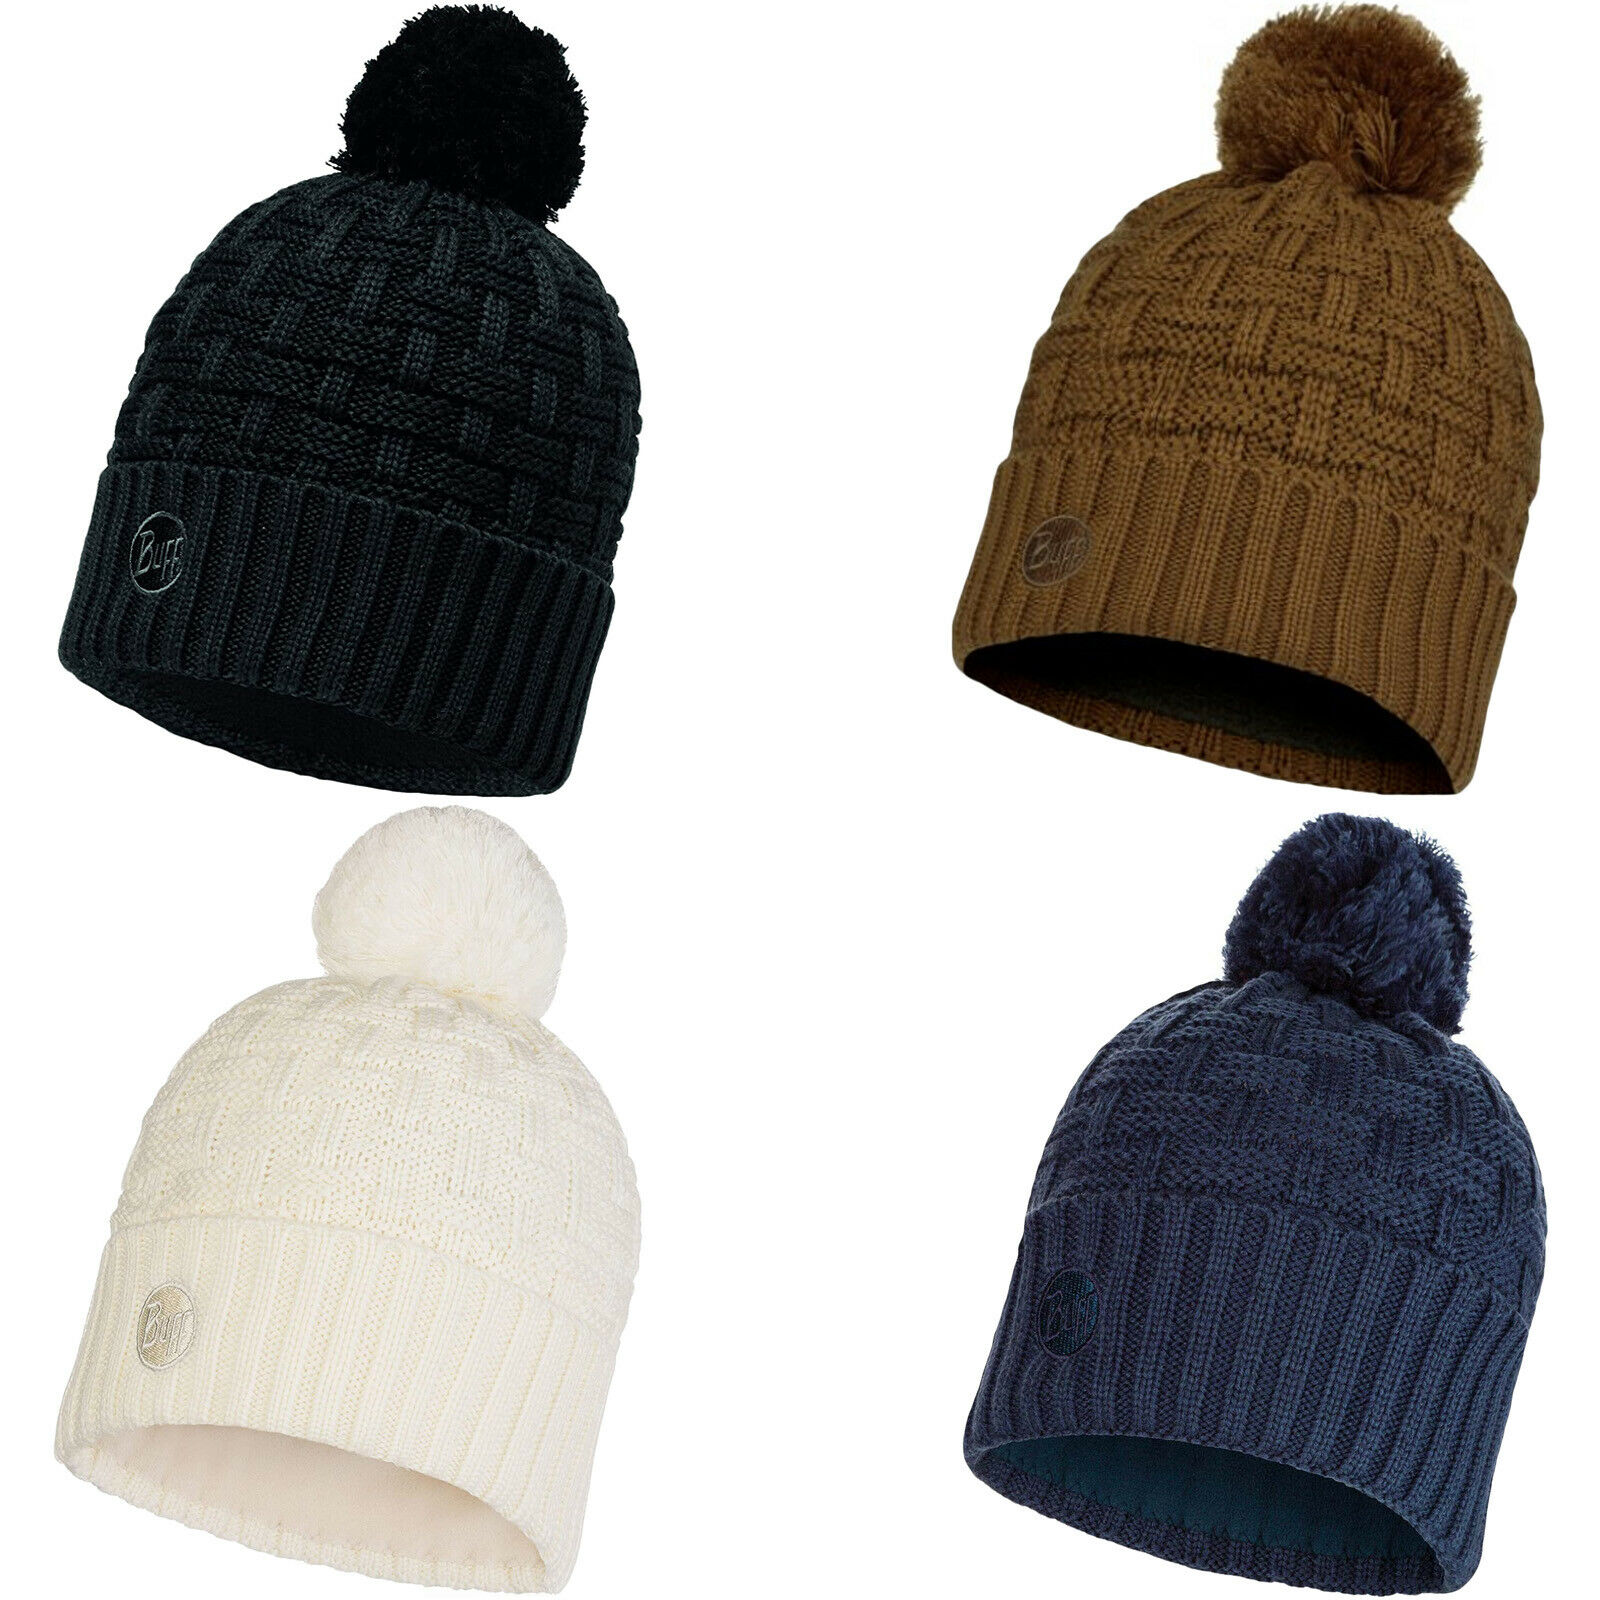 Buff Unisex Arion Chunky Fleece Lined Knitted Warm Winter Bobble Beanie Hat